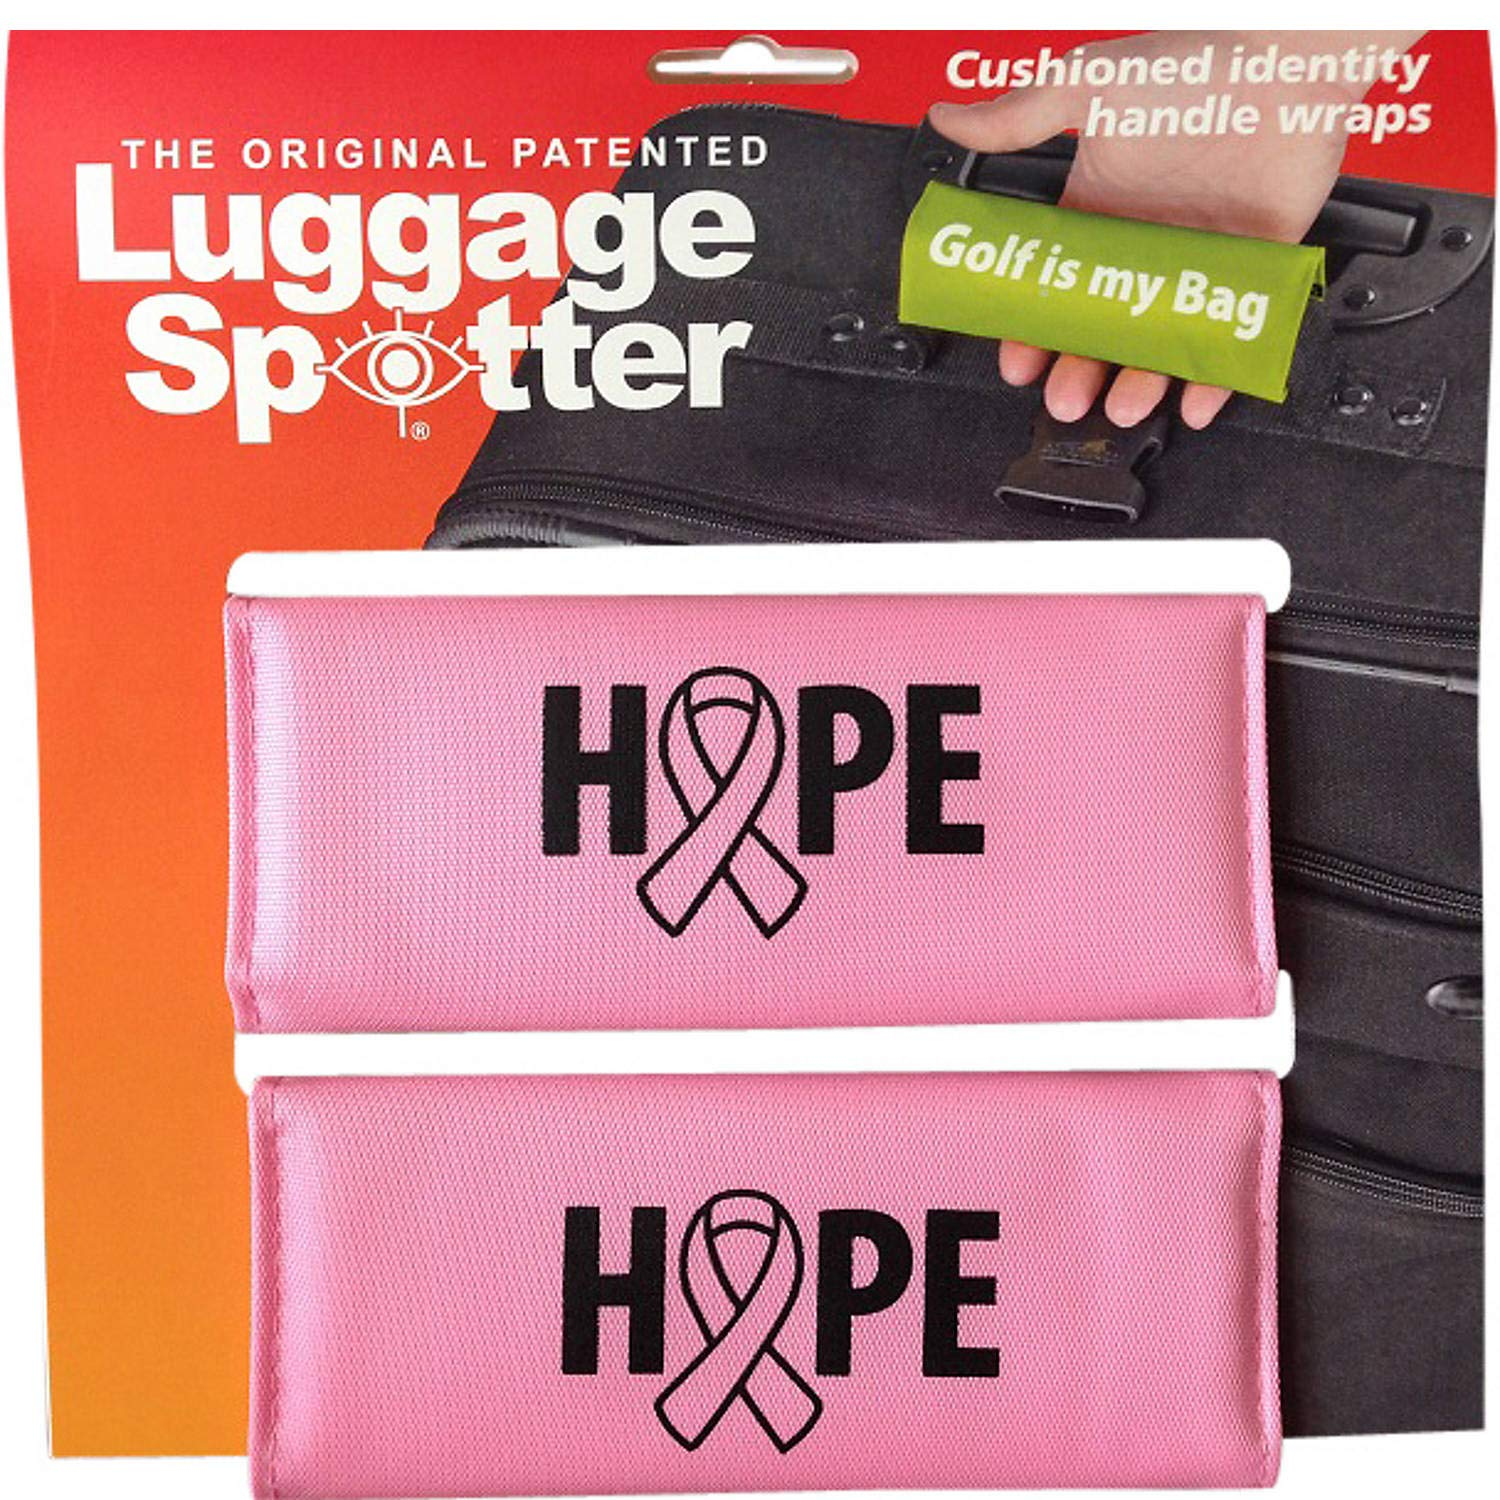 BUY ONE GET ONE FREE! PINK HOPE BREAST CANCER Luggage Spotter® Luggage Locator/Handle Grip/Luggage Grip/Travel Bag Tag/Luggage Handle Wrap (4 PACK) by Luggage Spotter